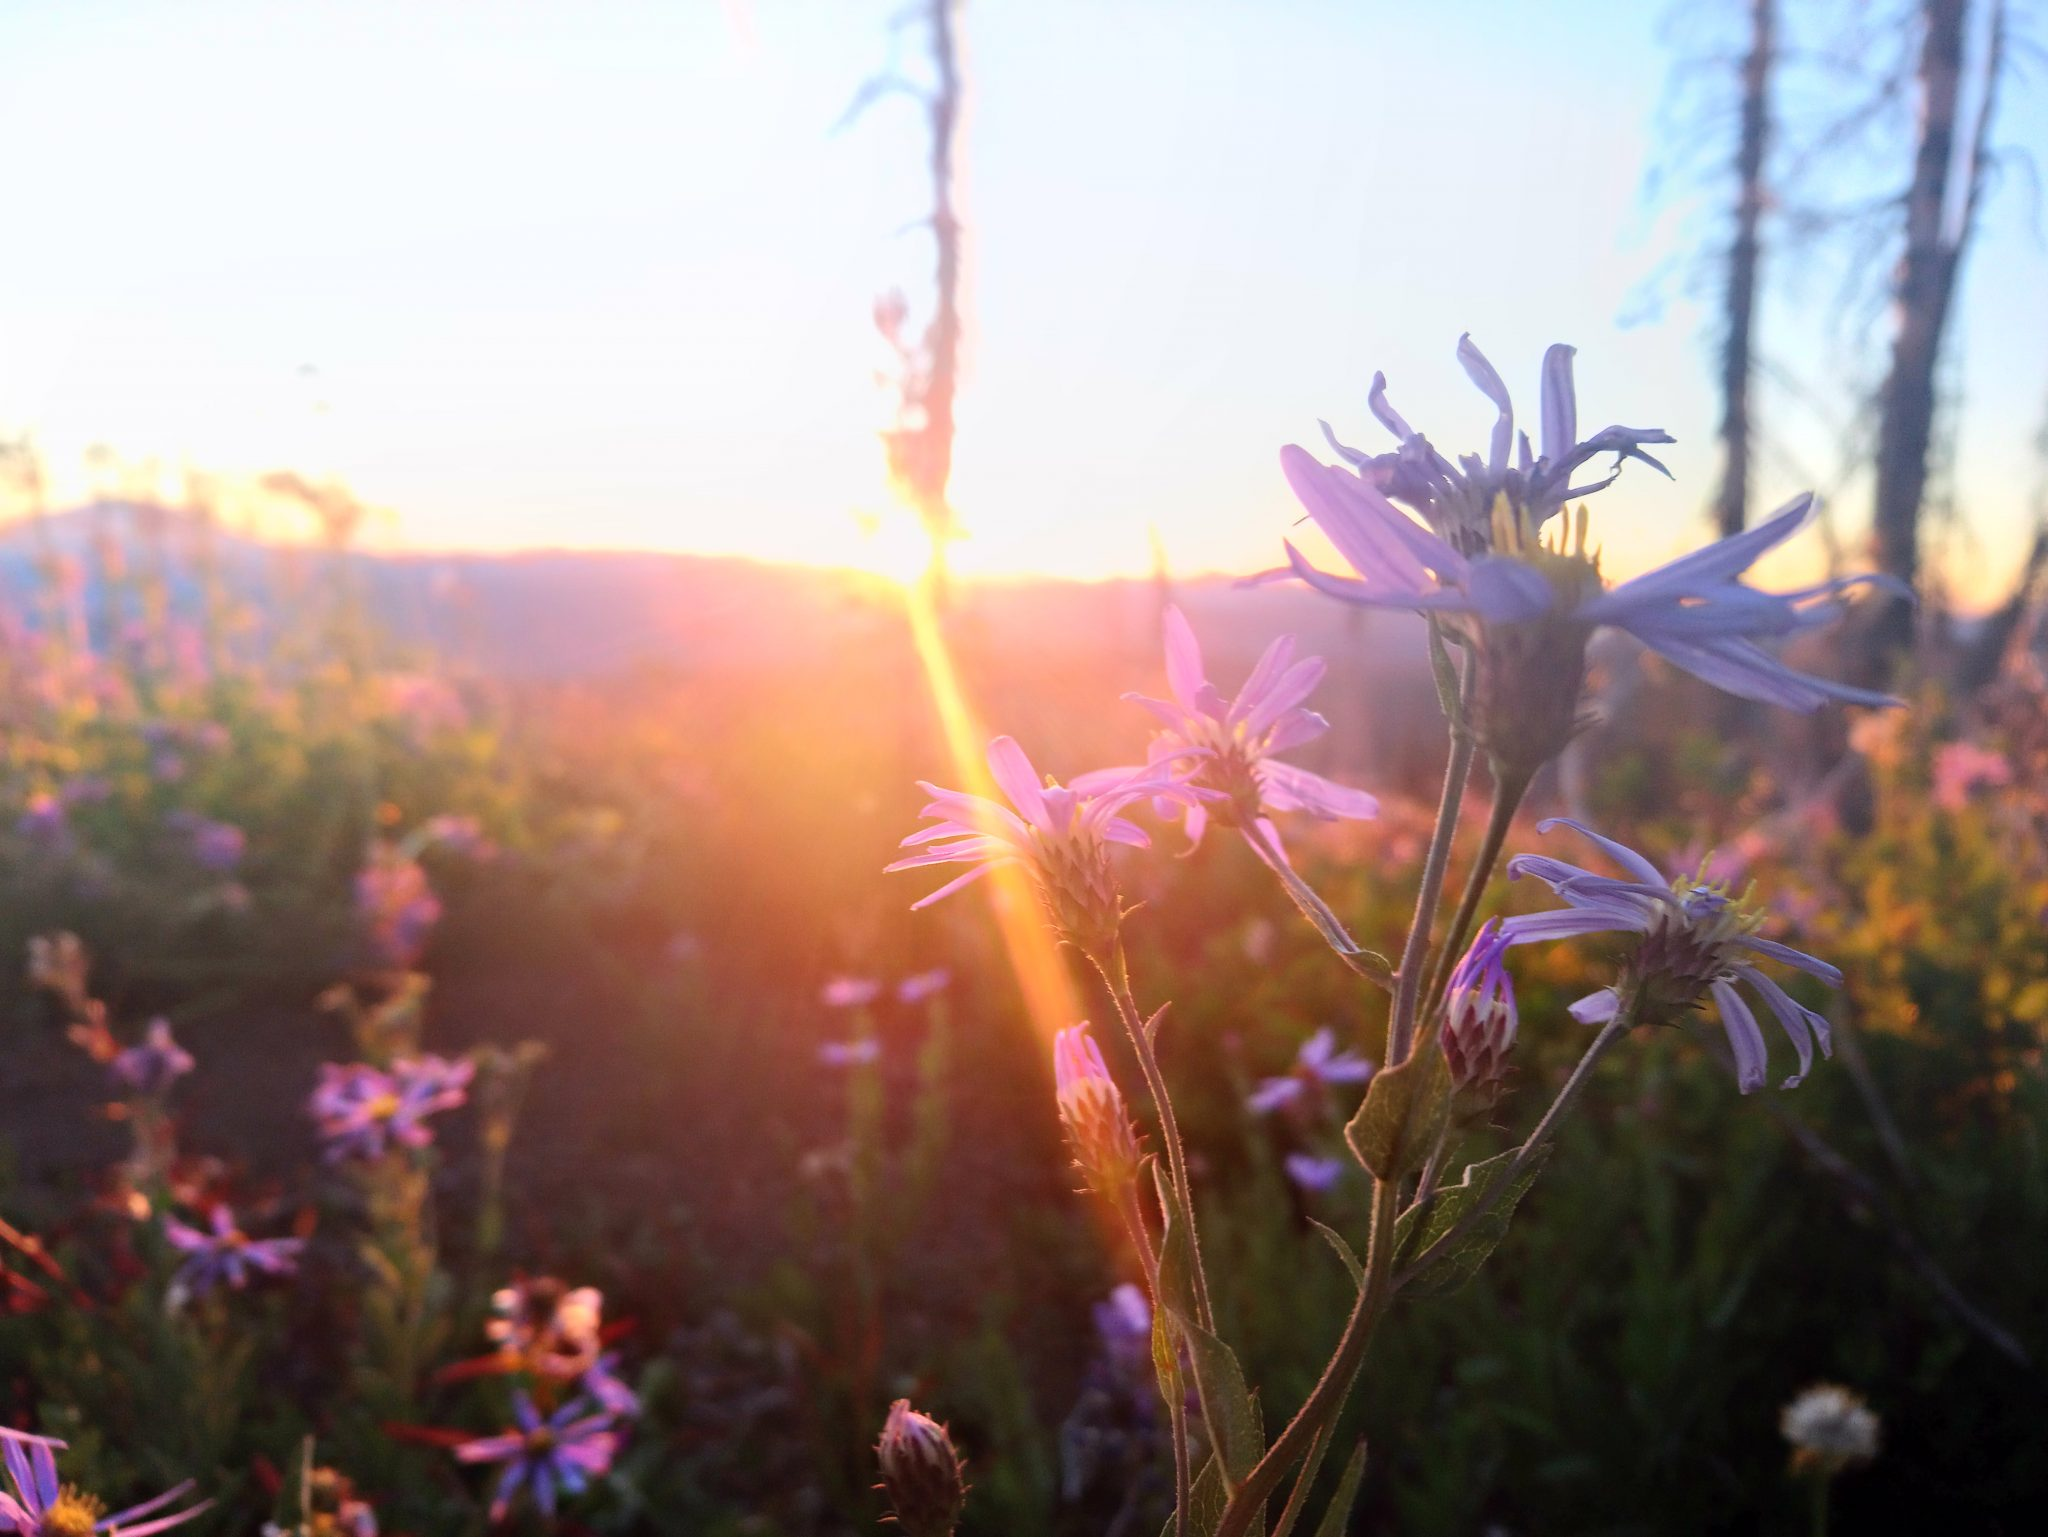 Wildflowers at dusk